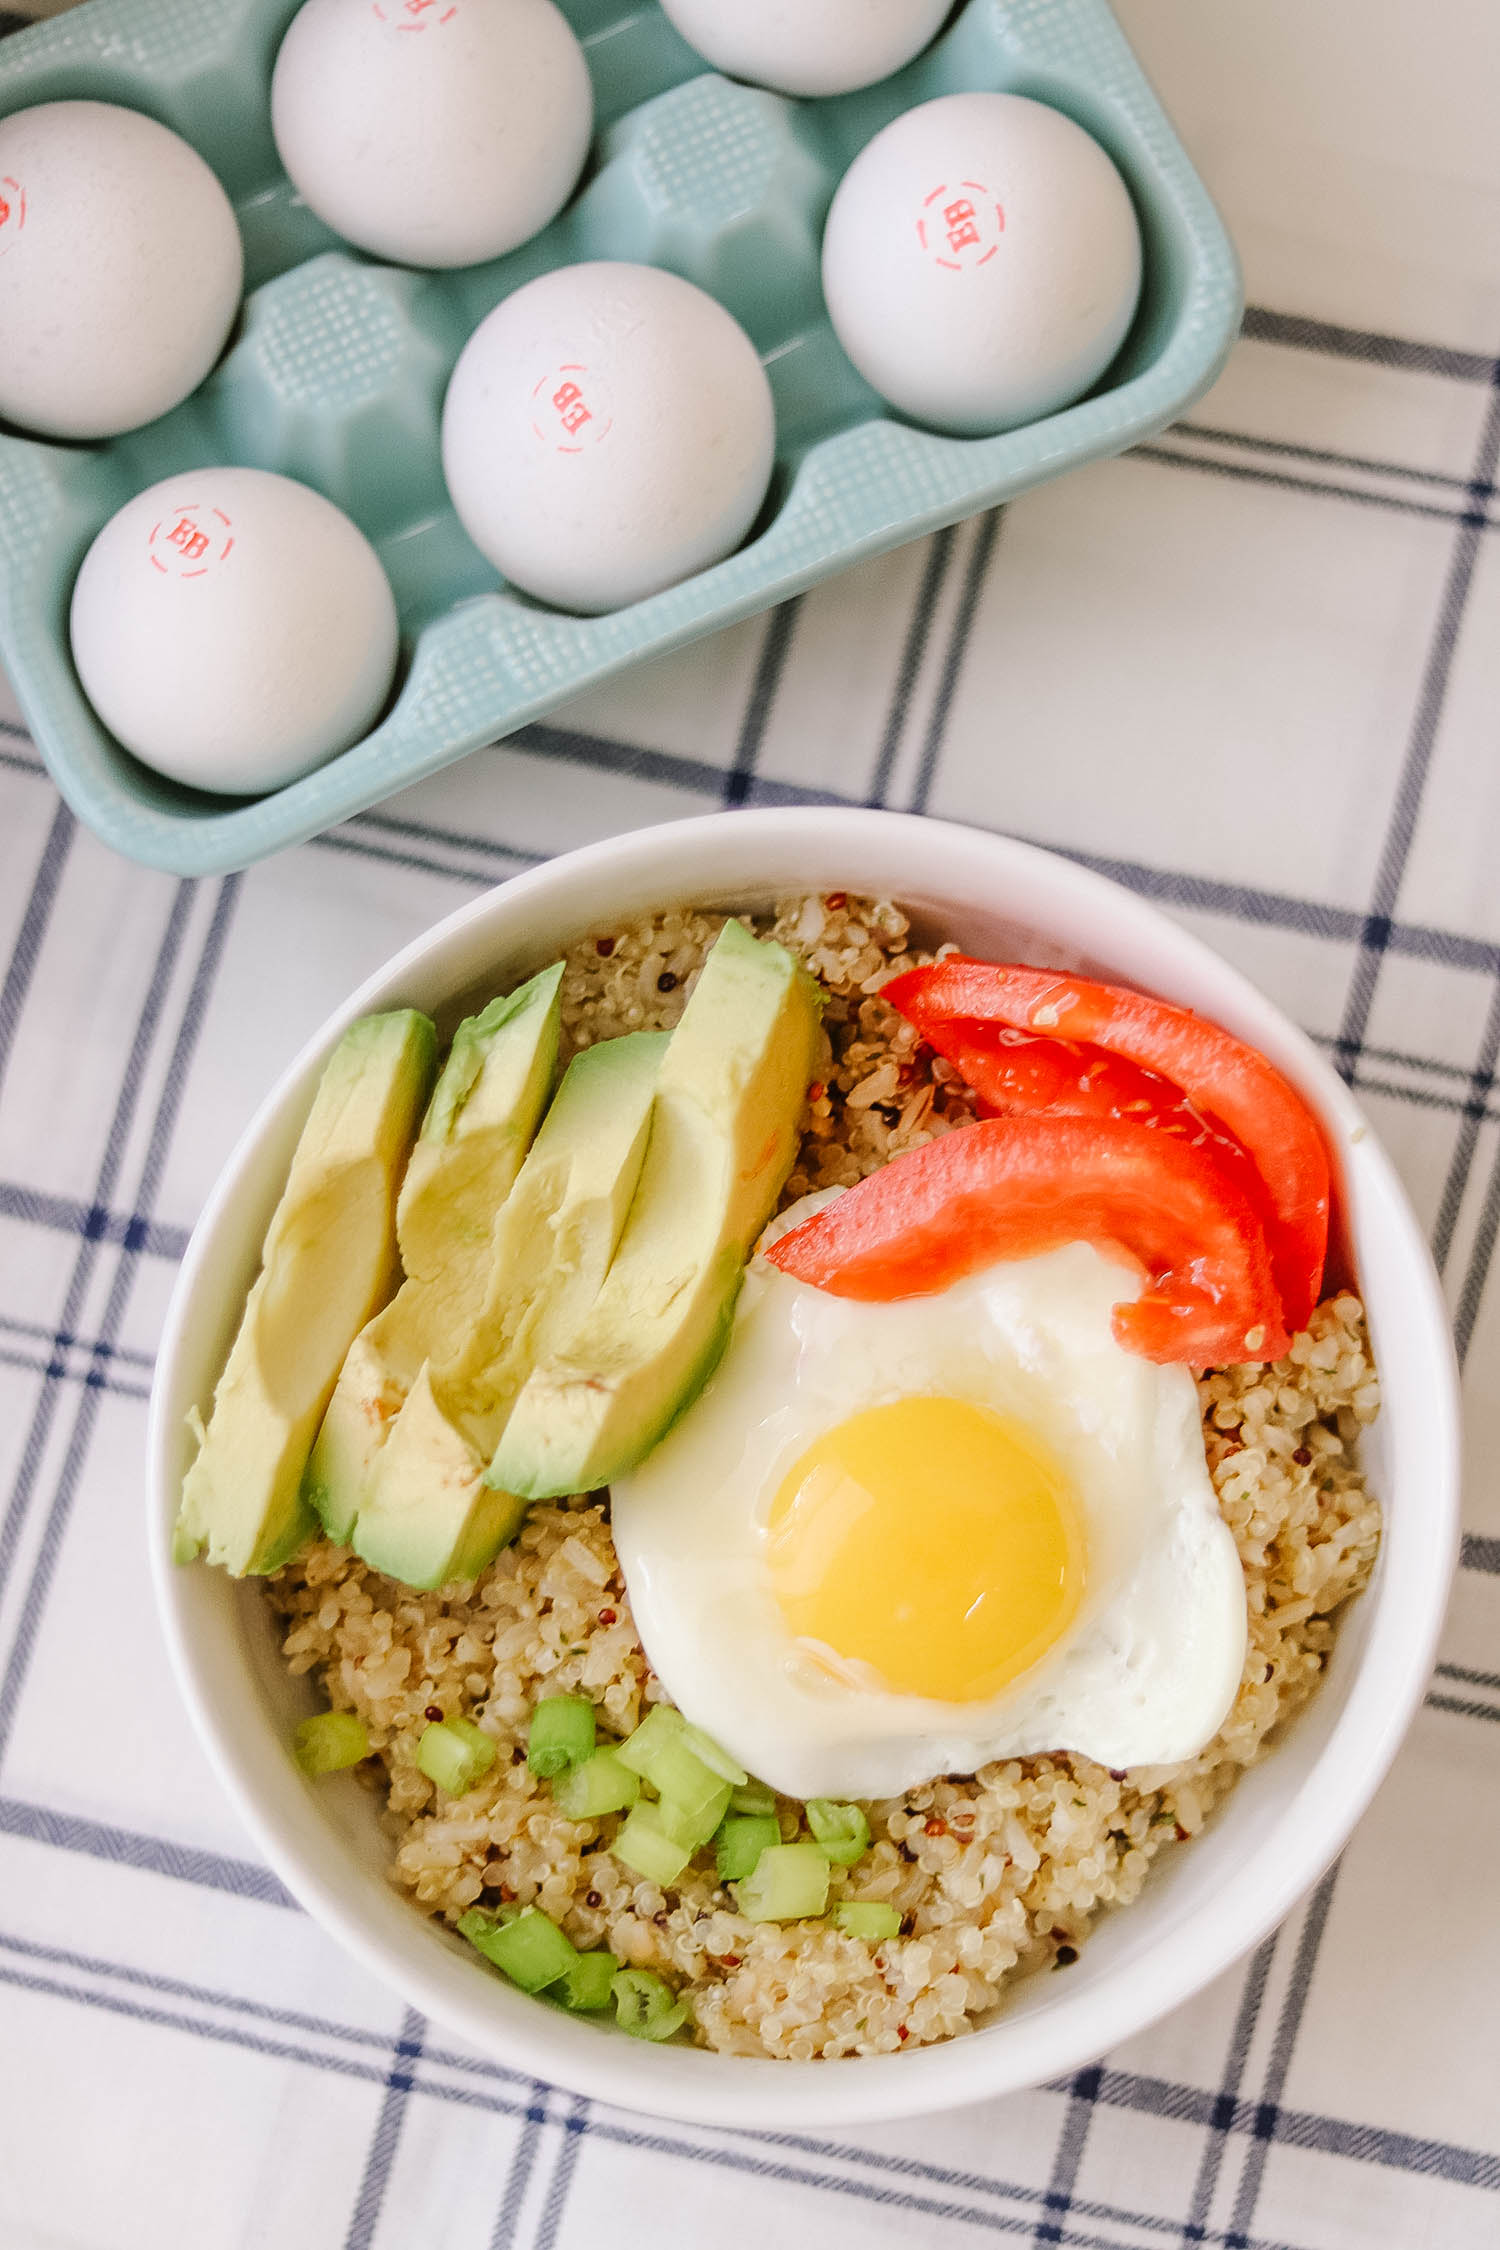 Southwest Quinoa and Egg Breakfast Bowl - Bianca Dottin - Orlando Blogger